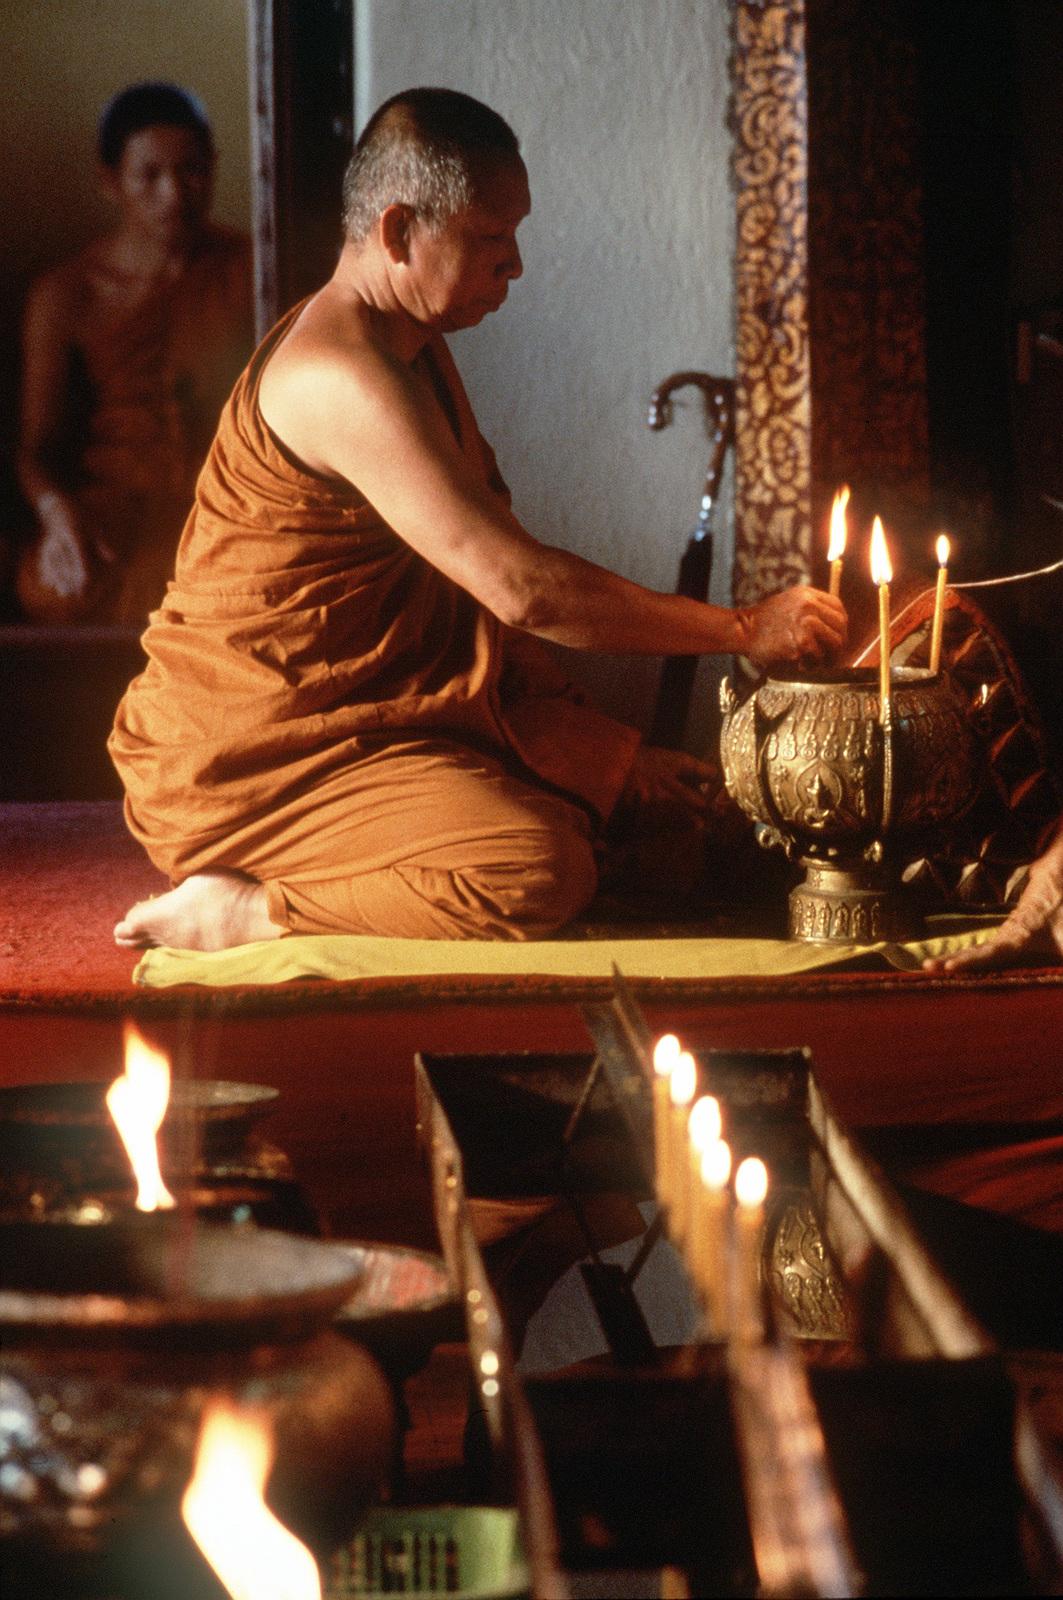 Bhuddist monk places candle at alter in Bangkok temple. Exact Date Shot Unknown